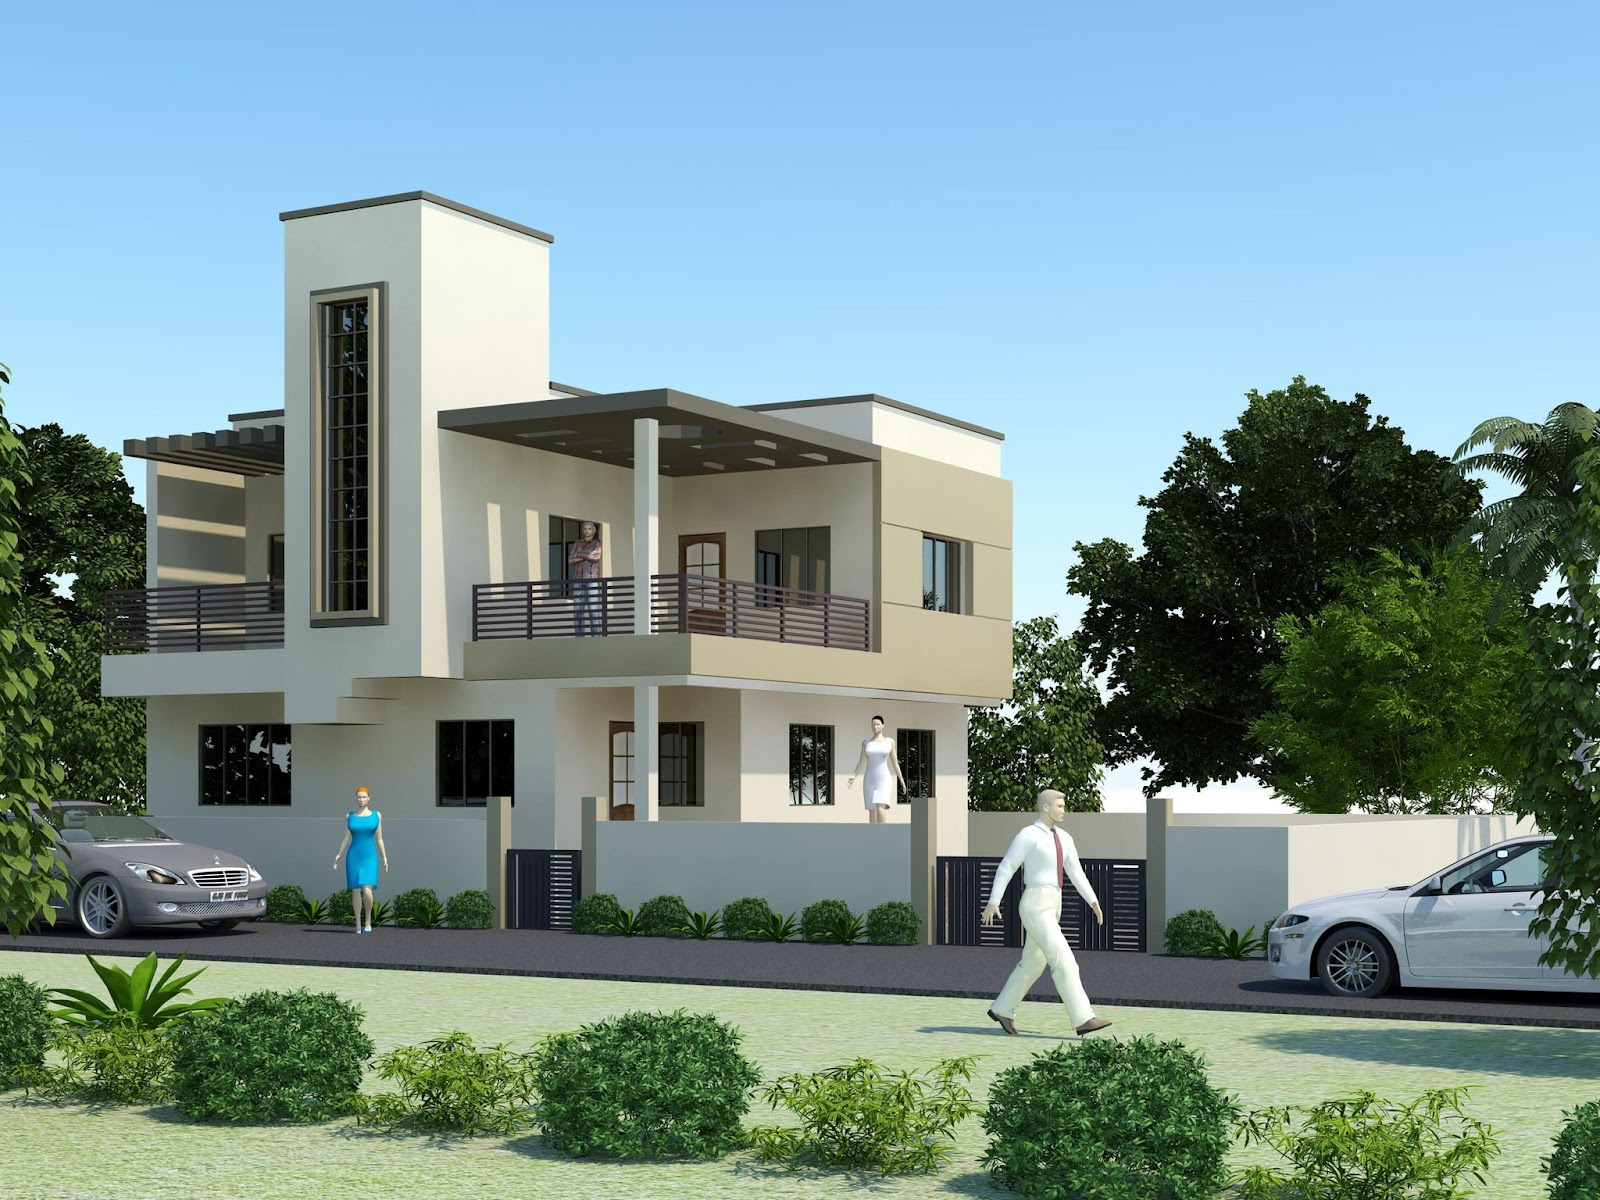 New home designs latest modern homes exterior designs front views pictures - Design of home ...